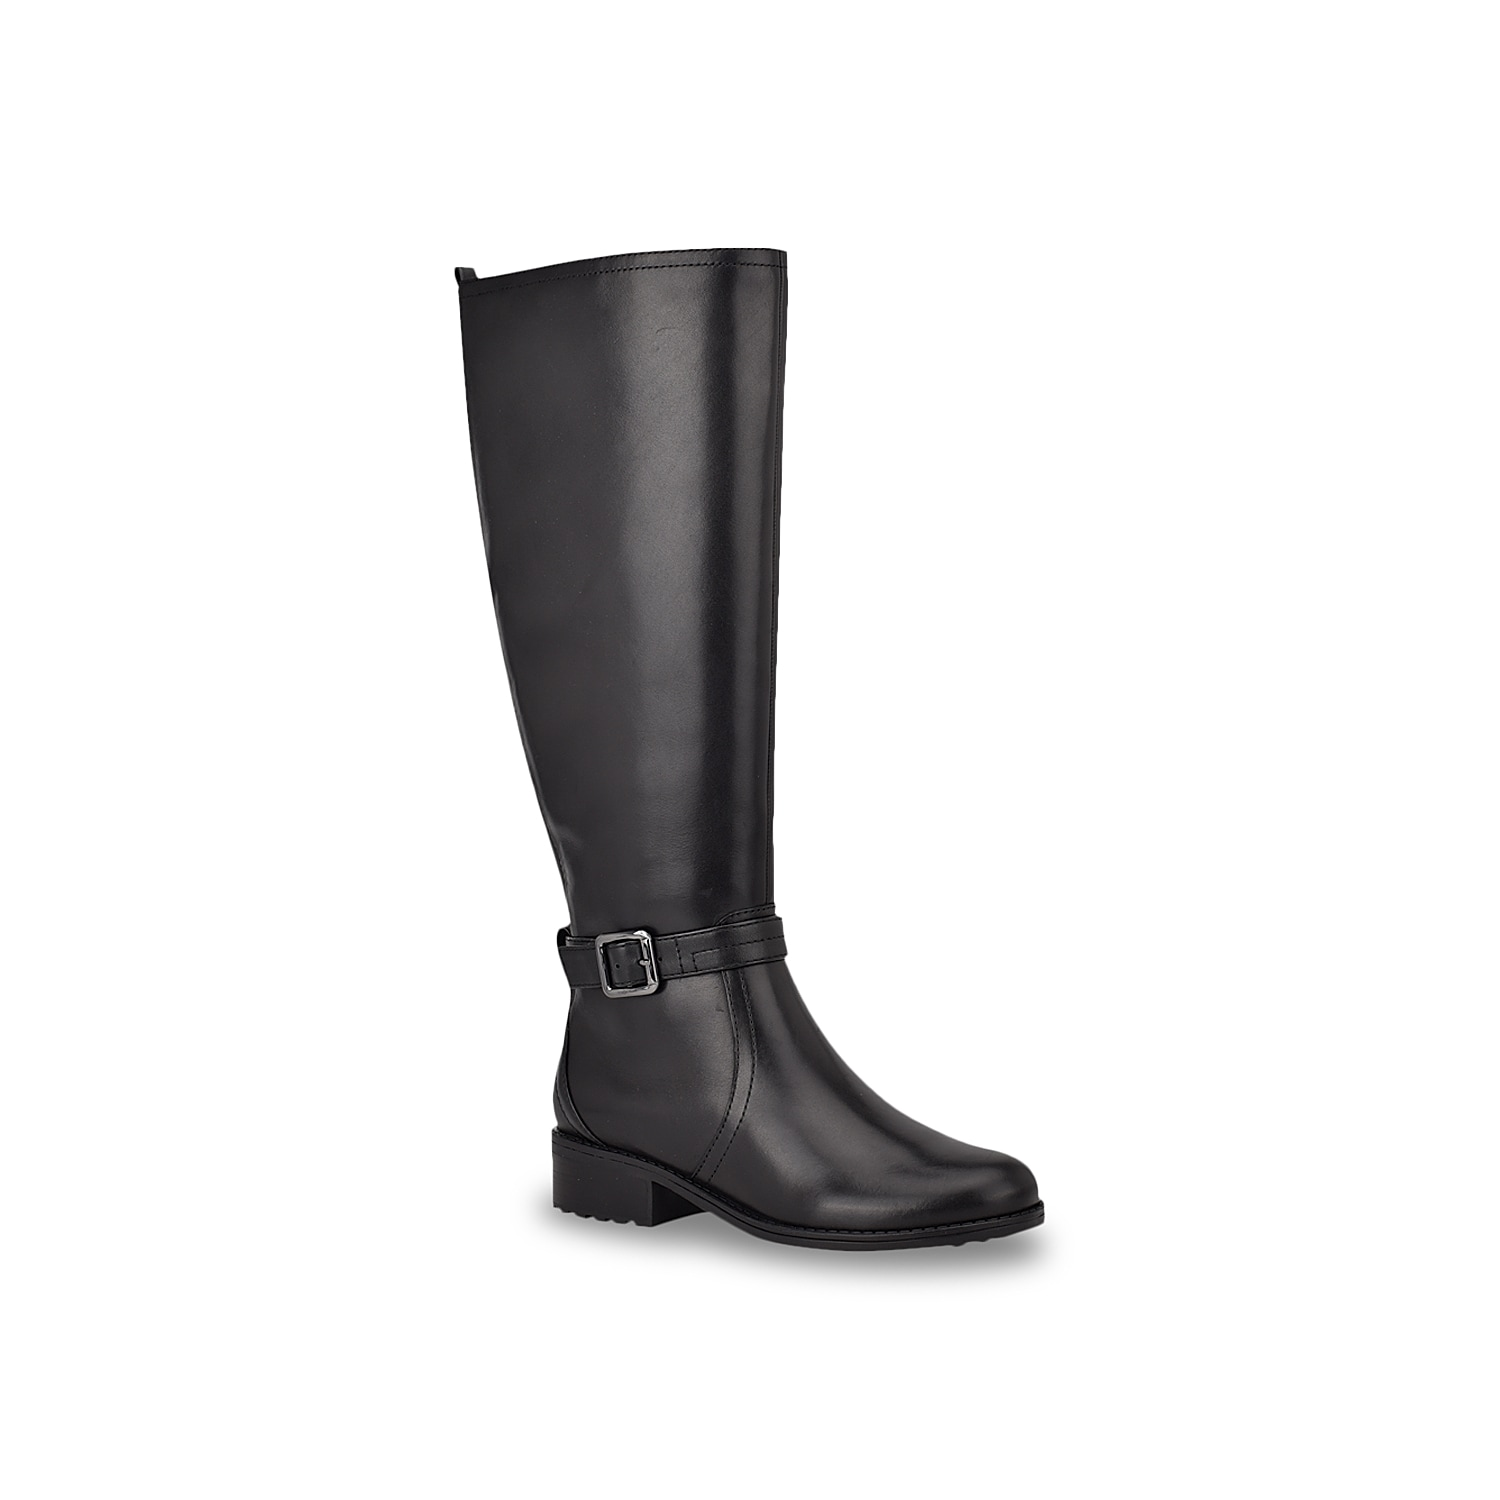 The Reverie boot by Easy Spirit can go well with a versatile range of outfits. Boasting of a tall silhouette with rear elastic gore, this boot has convenient inside zip, reliable arch support, fabric lining and footbed along with traction lug rubber sole with supportive low heel.Click here for Boot Measuring Guide.